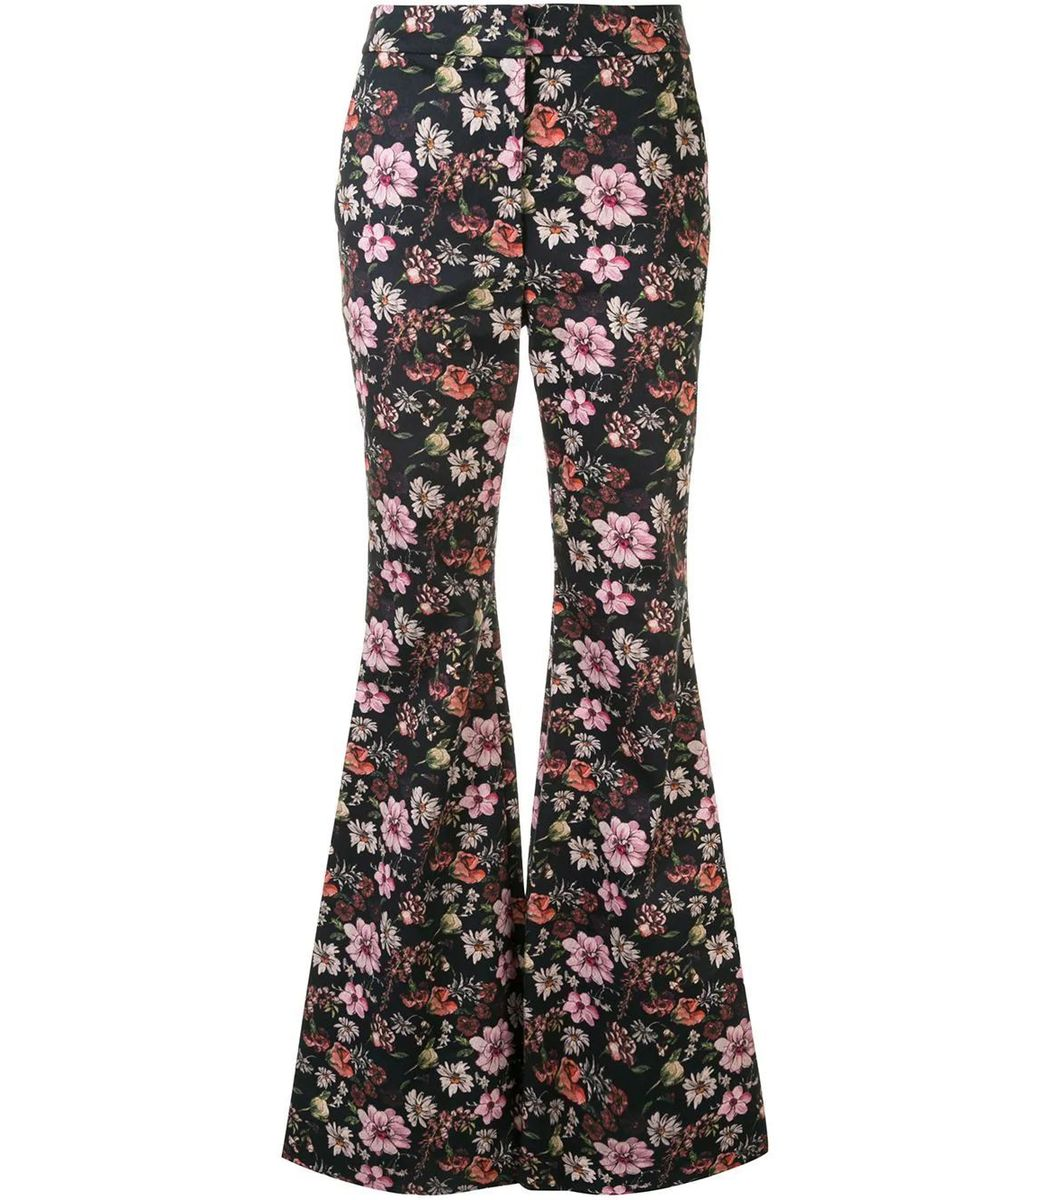 Adam Lippes Floral Printed High Waist Flare Pant